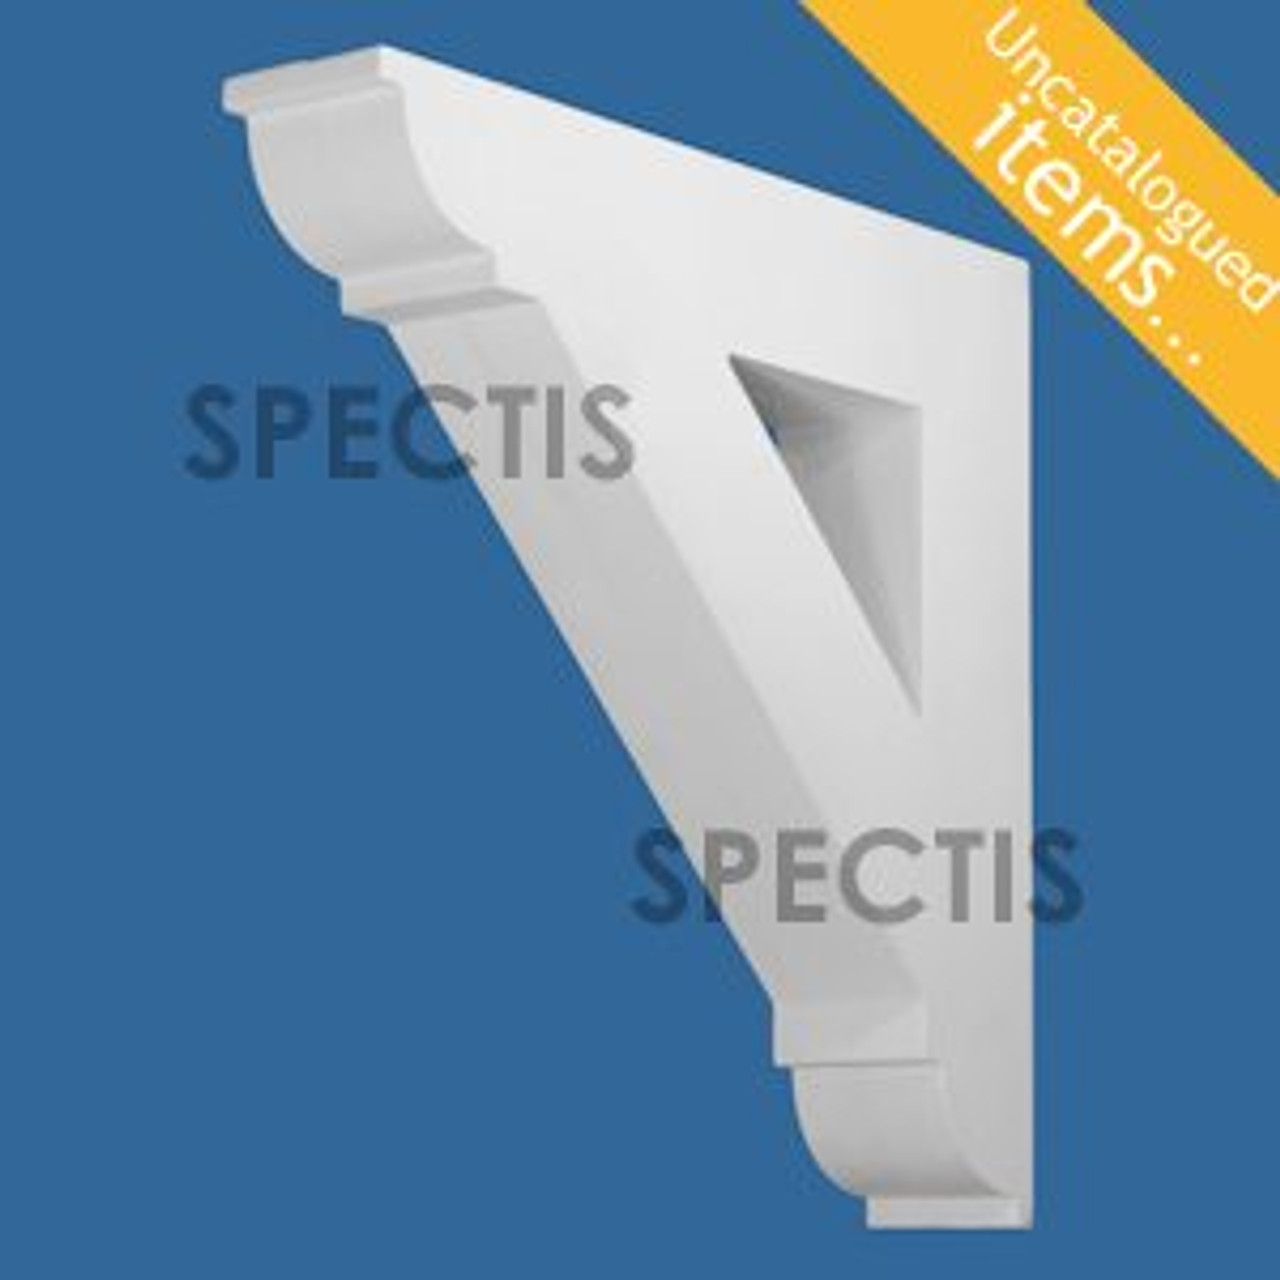 """BL3013 Spectis Eave Block or Bracket 4.5""""W x 23.88""""H x 23.88"""" Projection"""